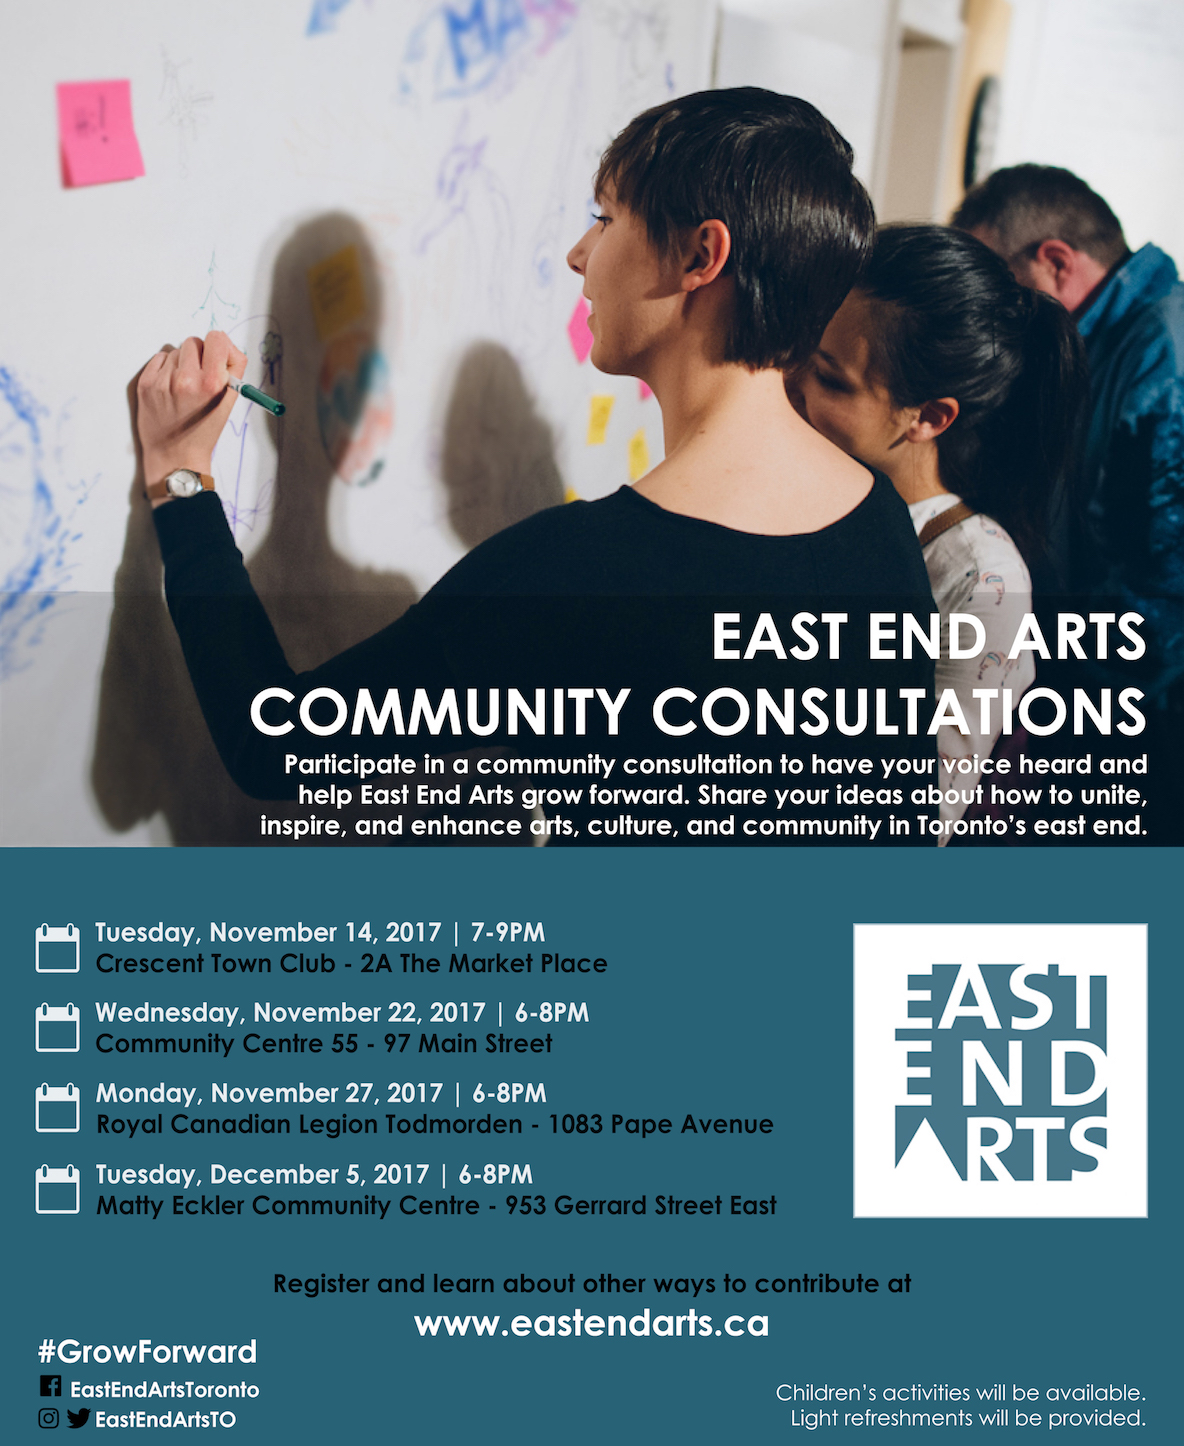 East End Arts Community Consultations